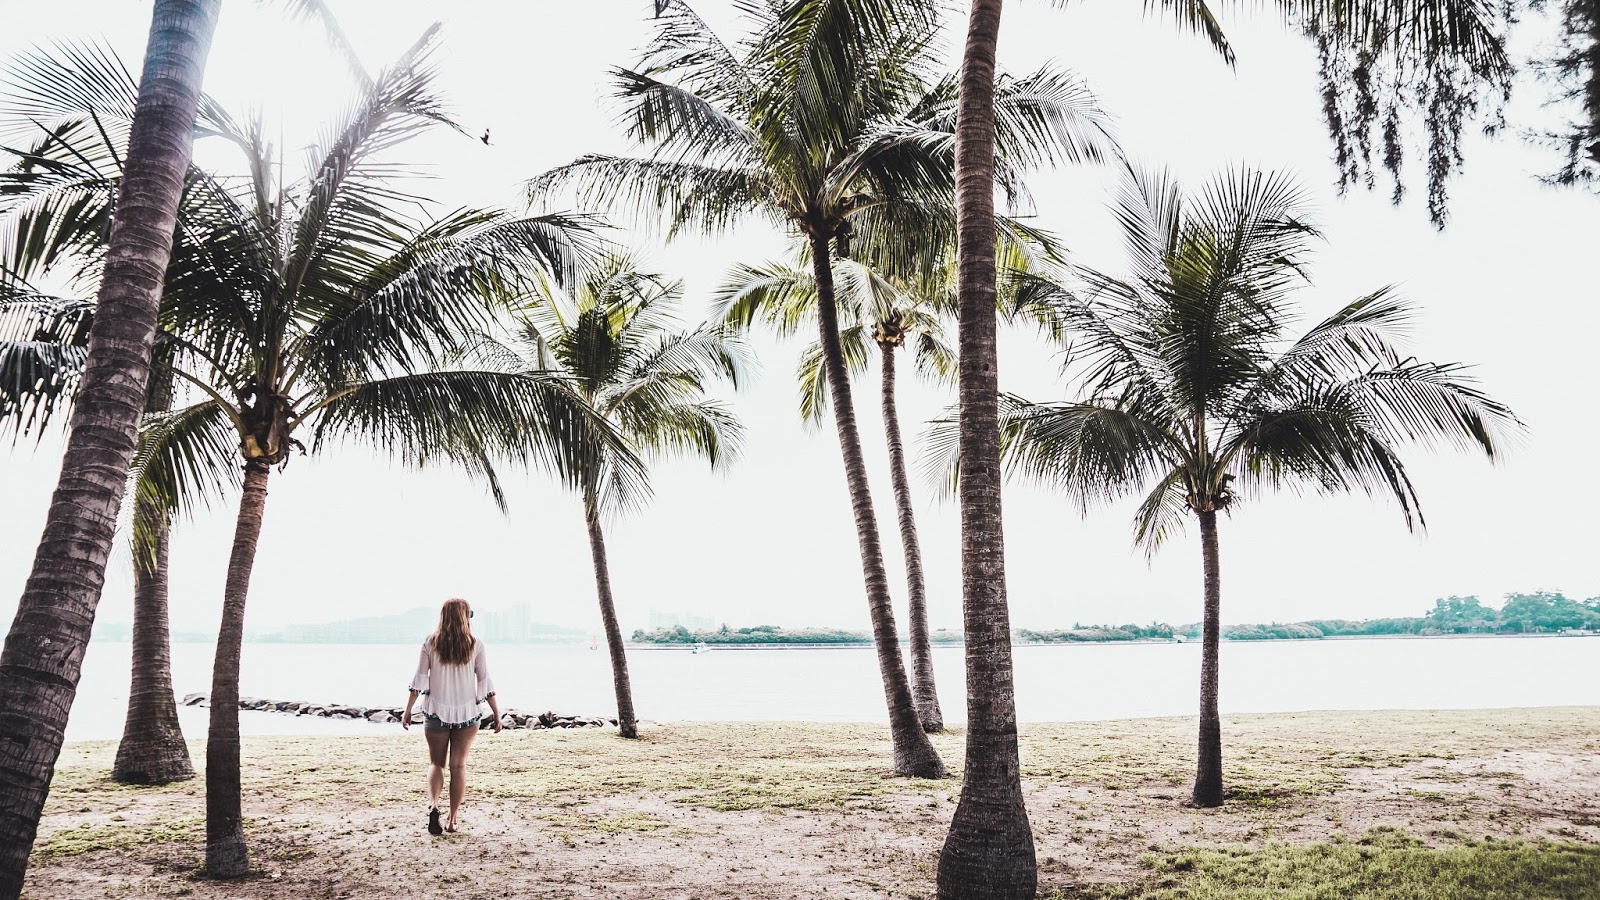 The Complete Guide on visiting The Best Beach in Singapore: Lazarus & St. John's Islands